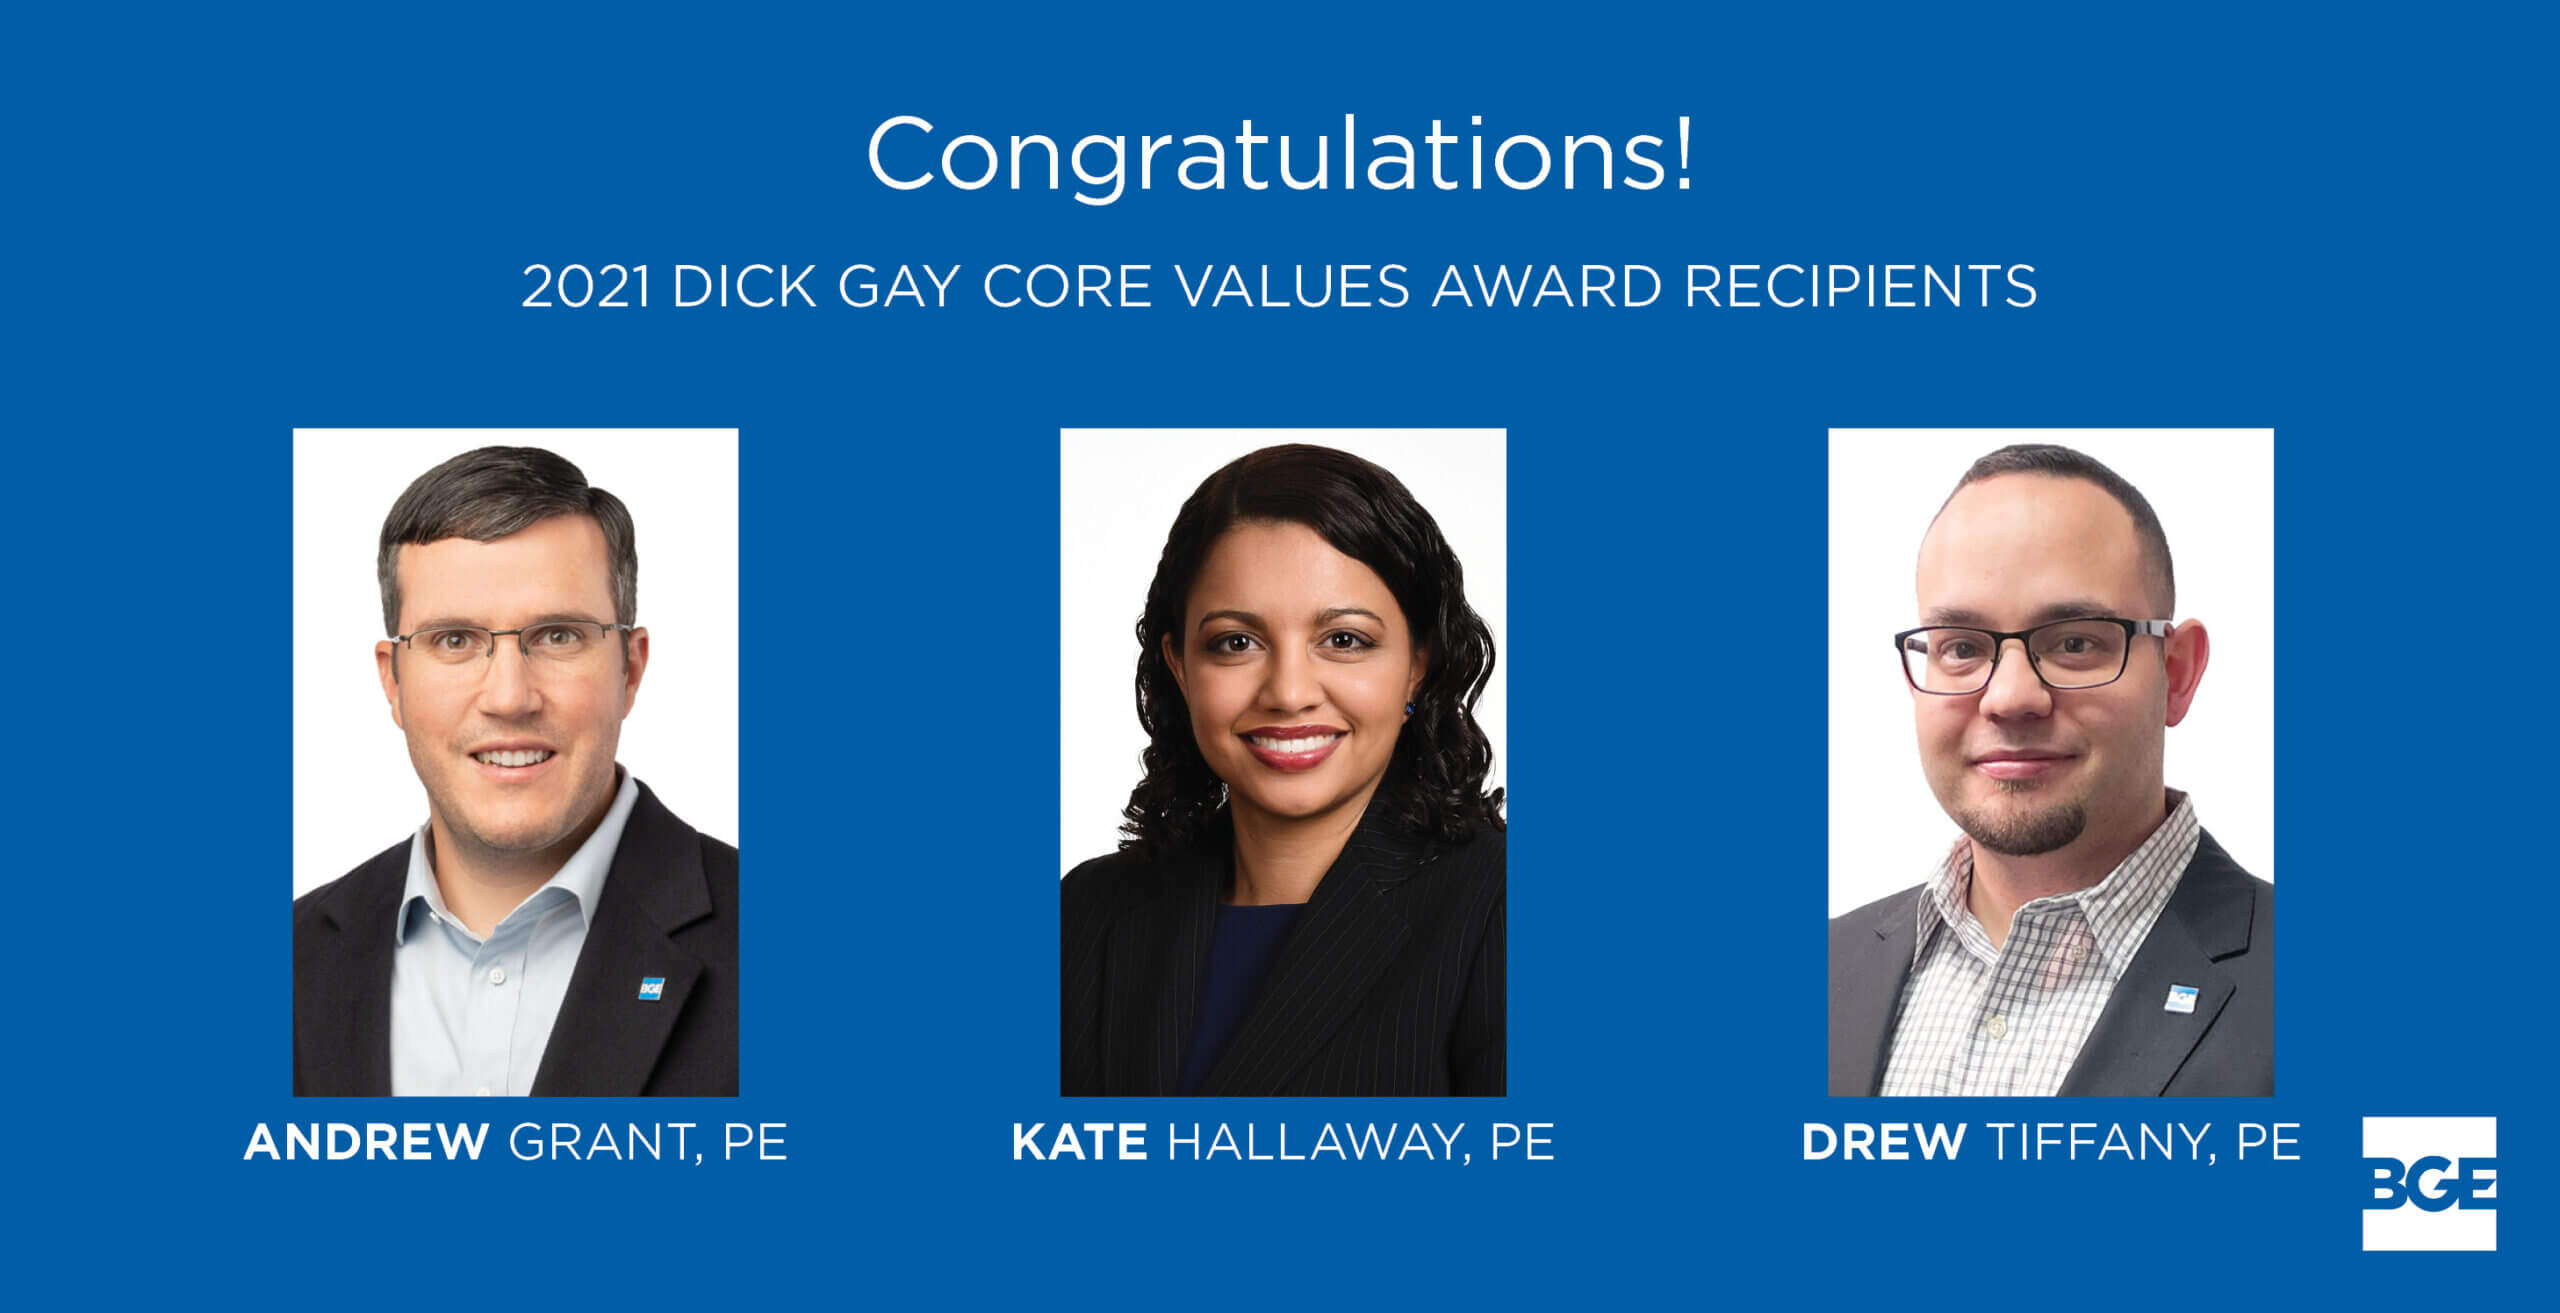 BGE Announces 2021 Dick Gay Core Values Award Recipients